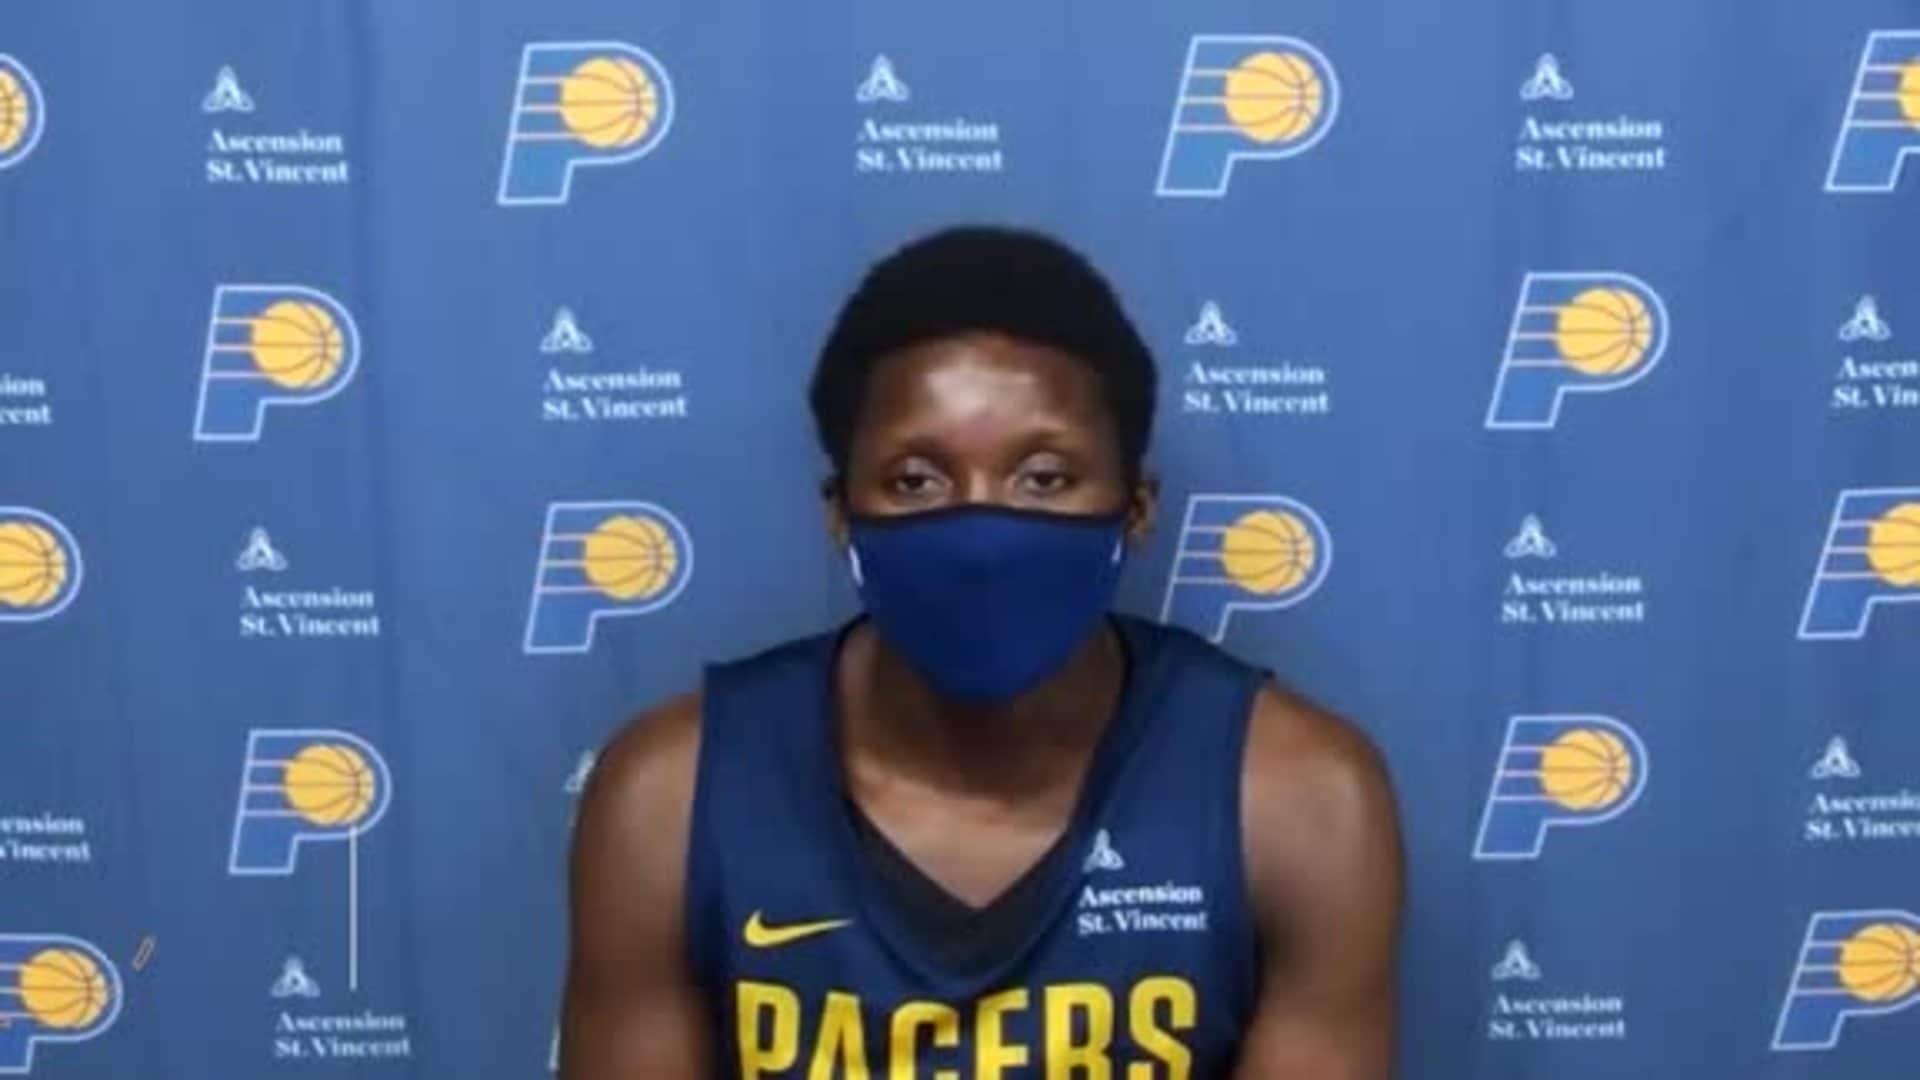 Pacers Ready for Tough Final Stretch